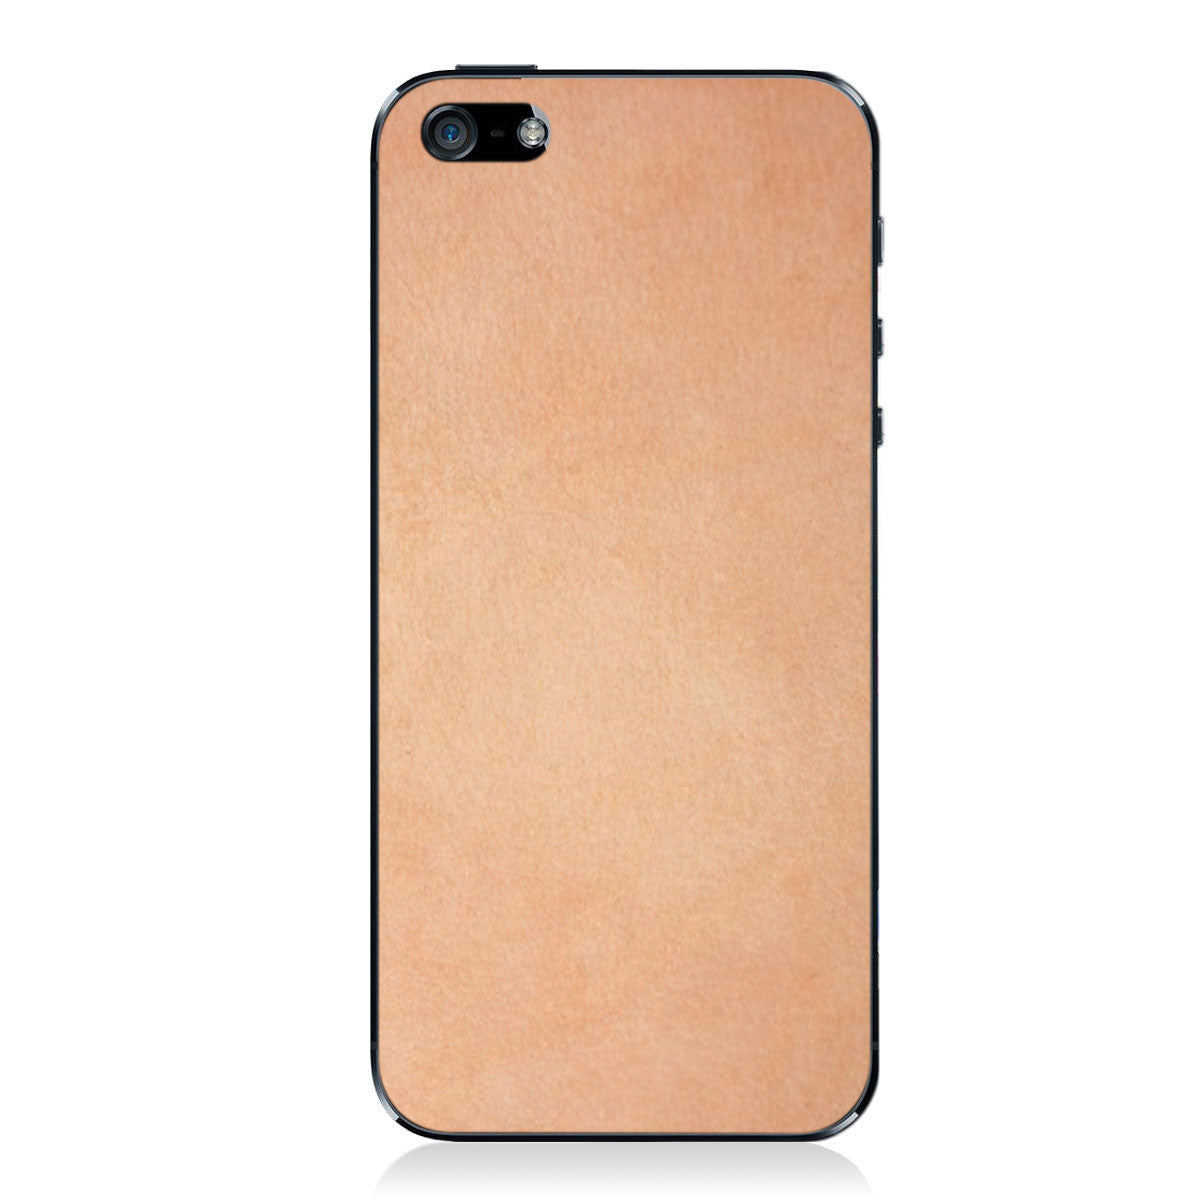 Natural iPhone 5 - 5S - SE Leather Skin